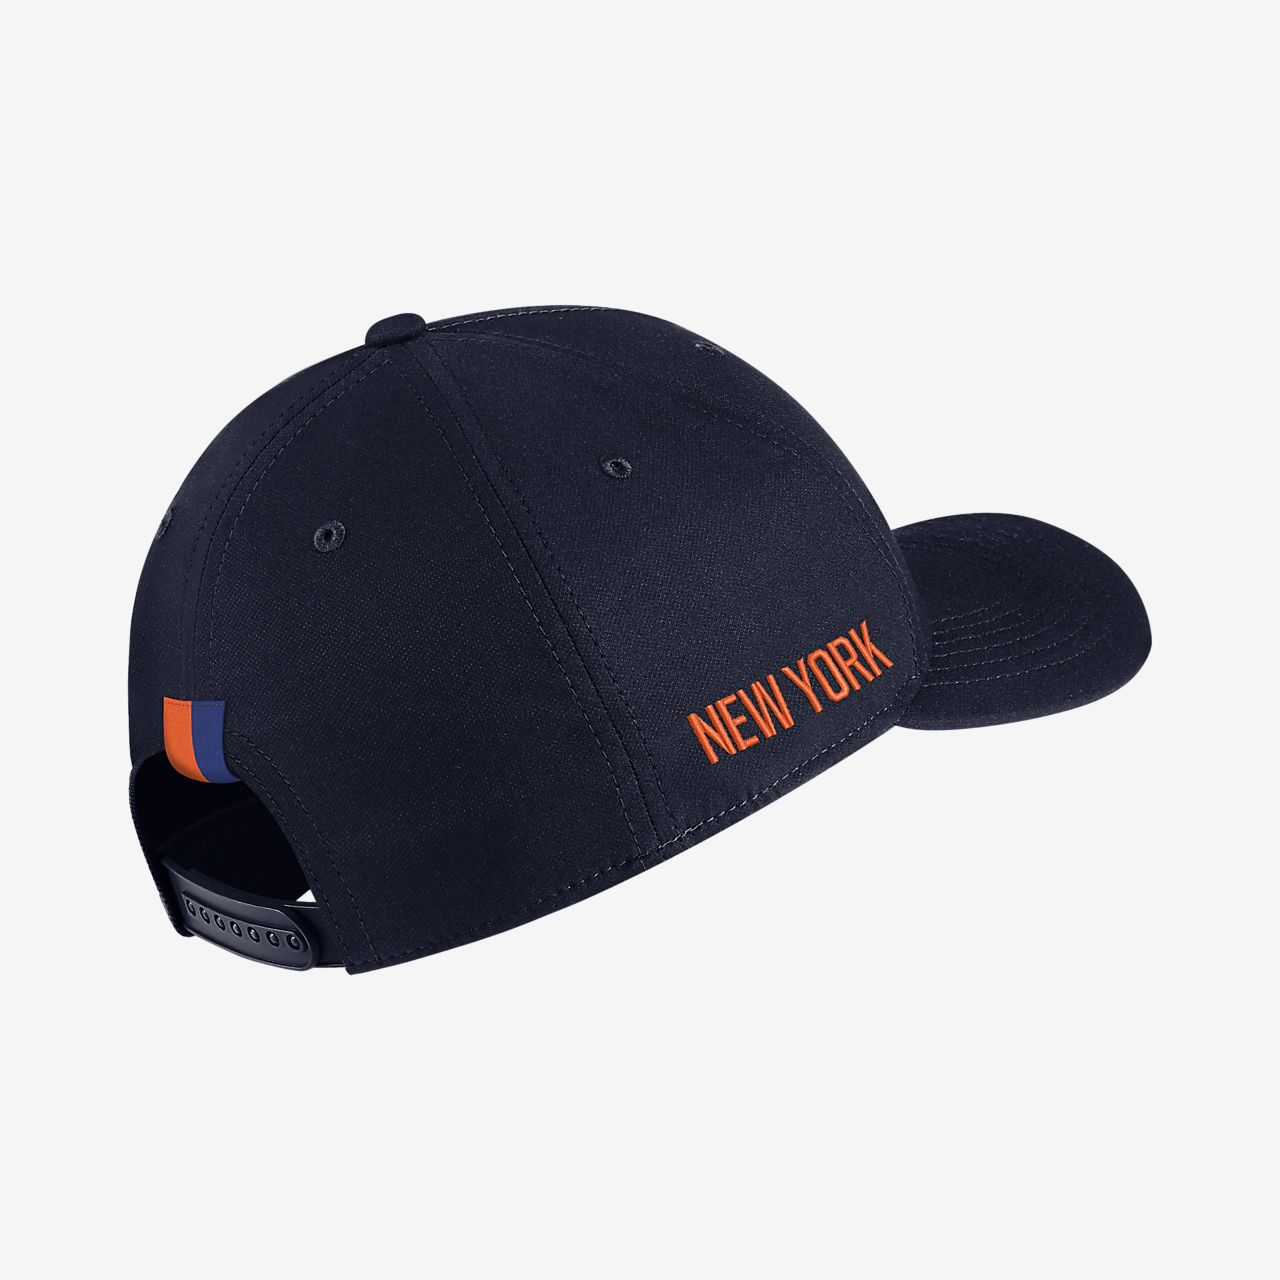 ed3bf2187ab New York Knicks City Edition Nike AeroBill Classic99 NBA Hat. Nike ...